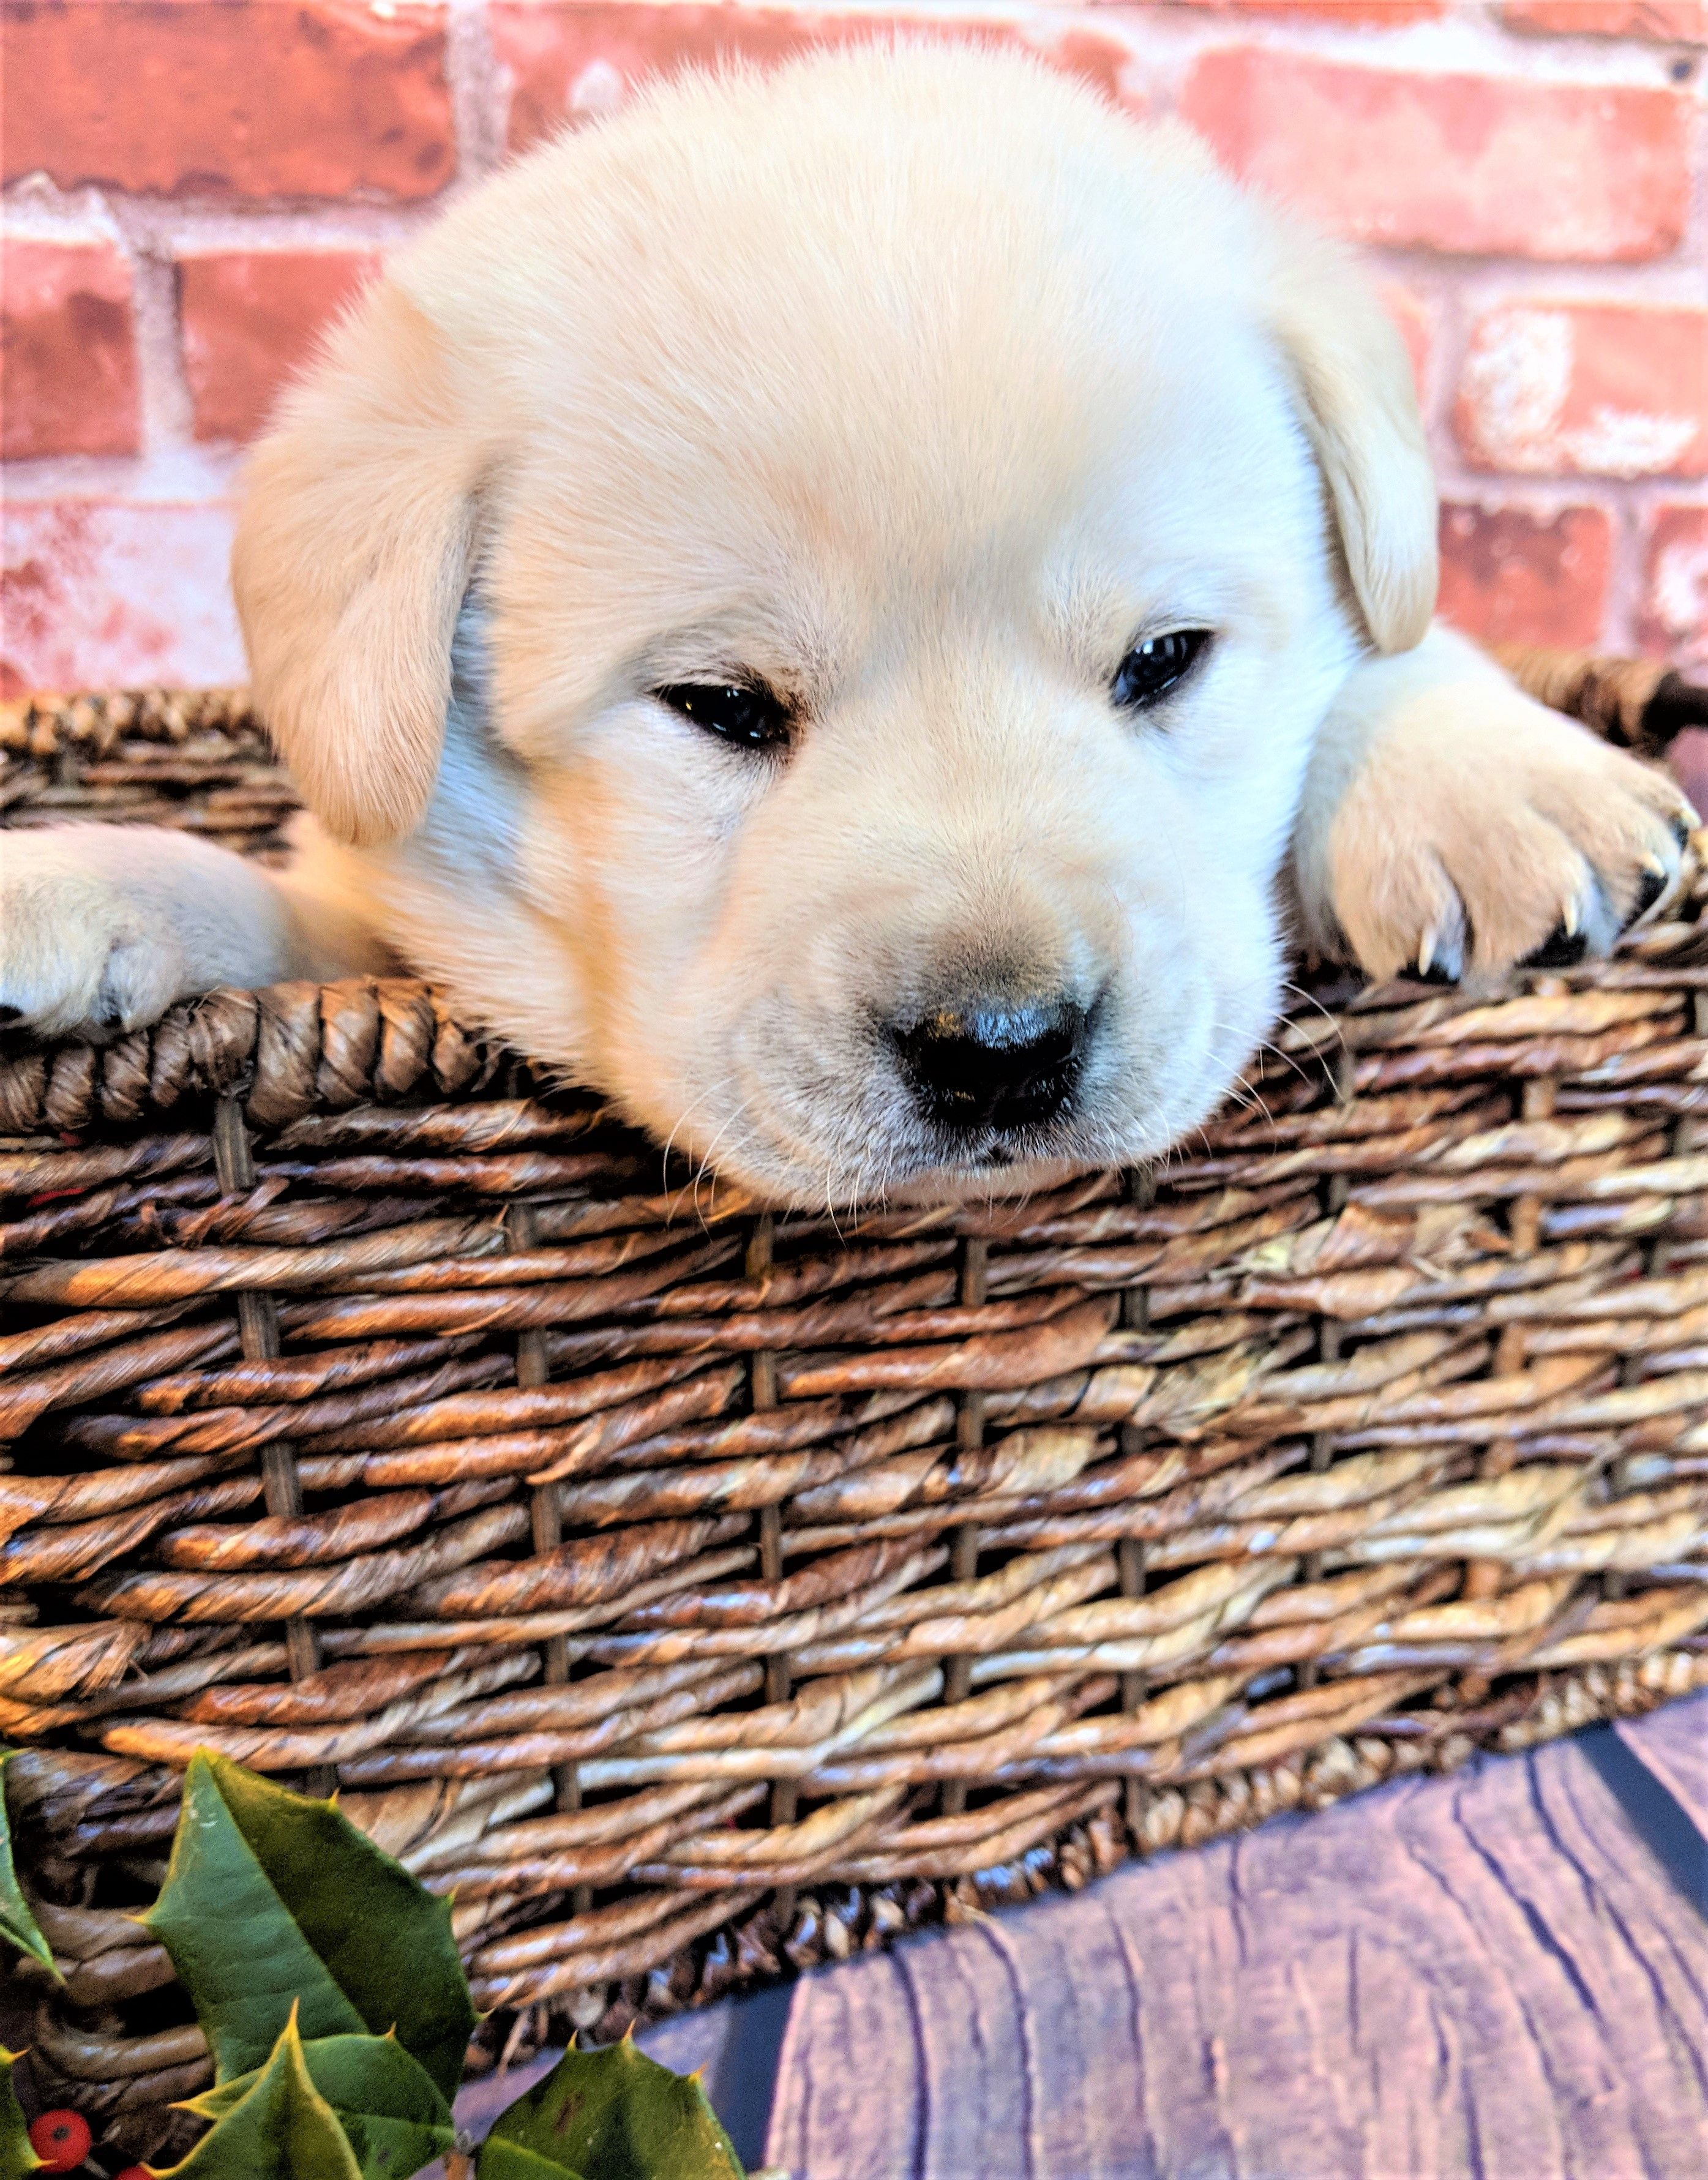 Yellow Lab Yellow Labrador Puppy Puppy Yellow Lab Puppy Male Yellow Lab Puppy Lancaster Pa Puppies For Sale Puppies Cute Cats And Dogs Yellow Lab Puppy